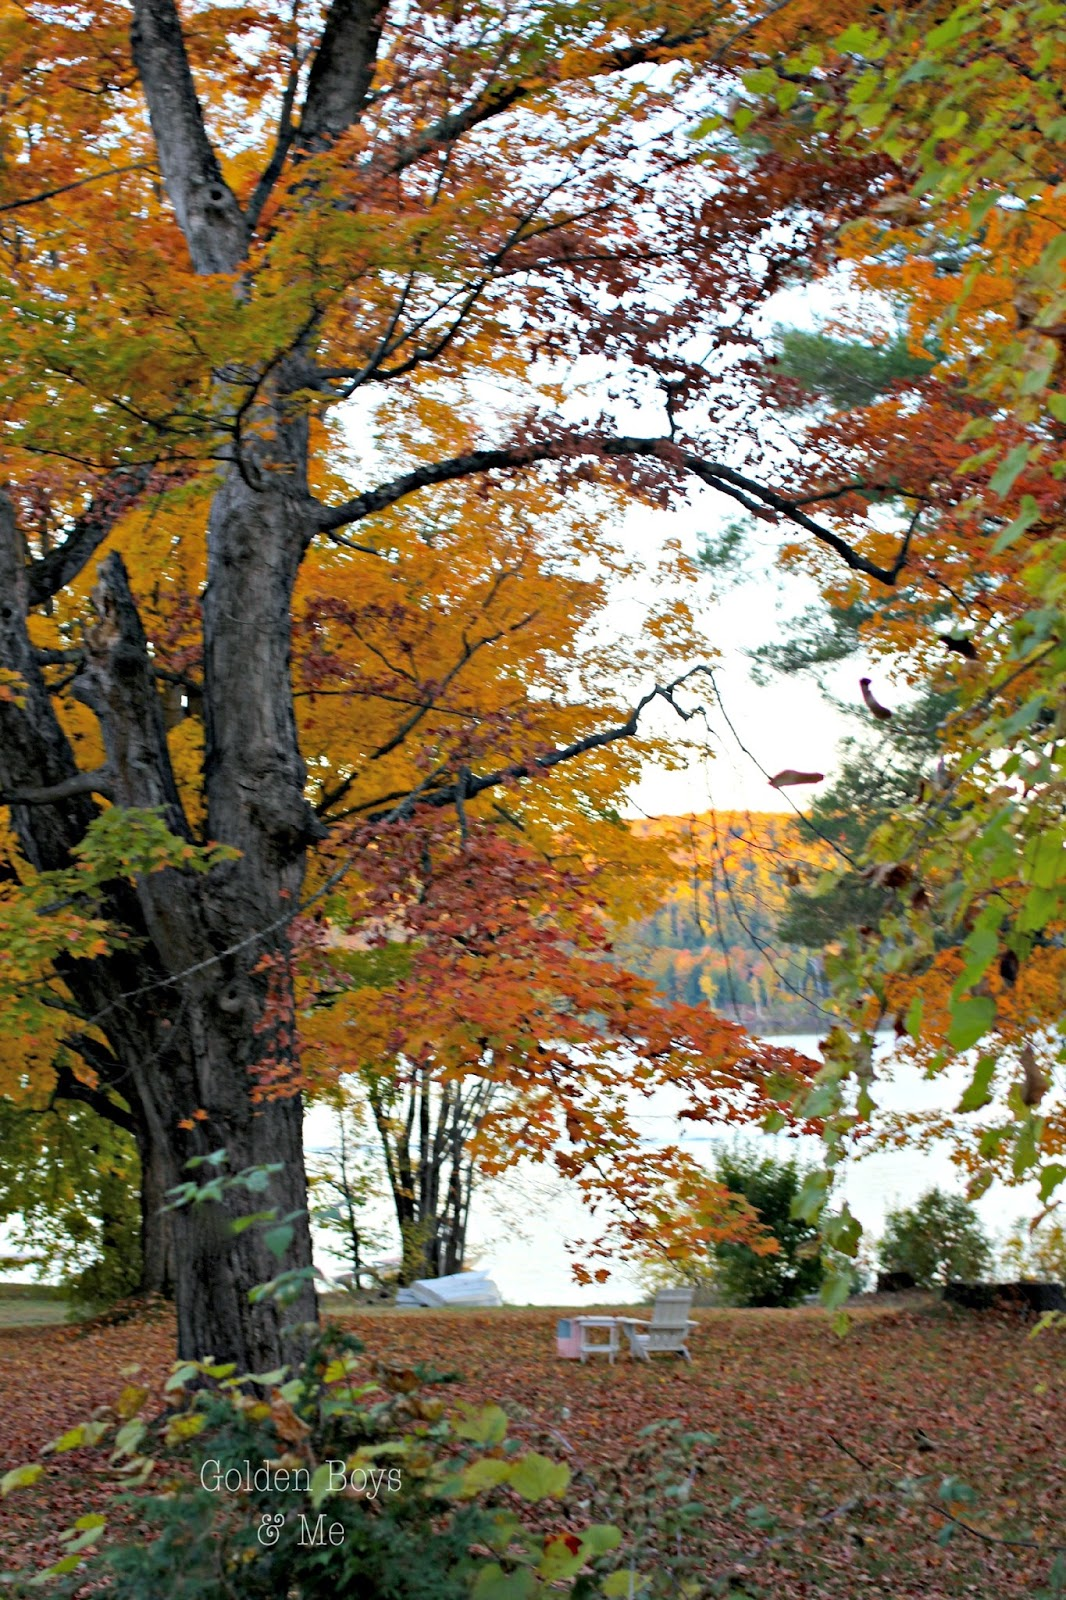 Adirondack chair by lake with fall foliage-www.goldenboysandme.com